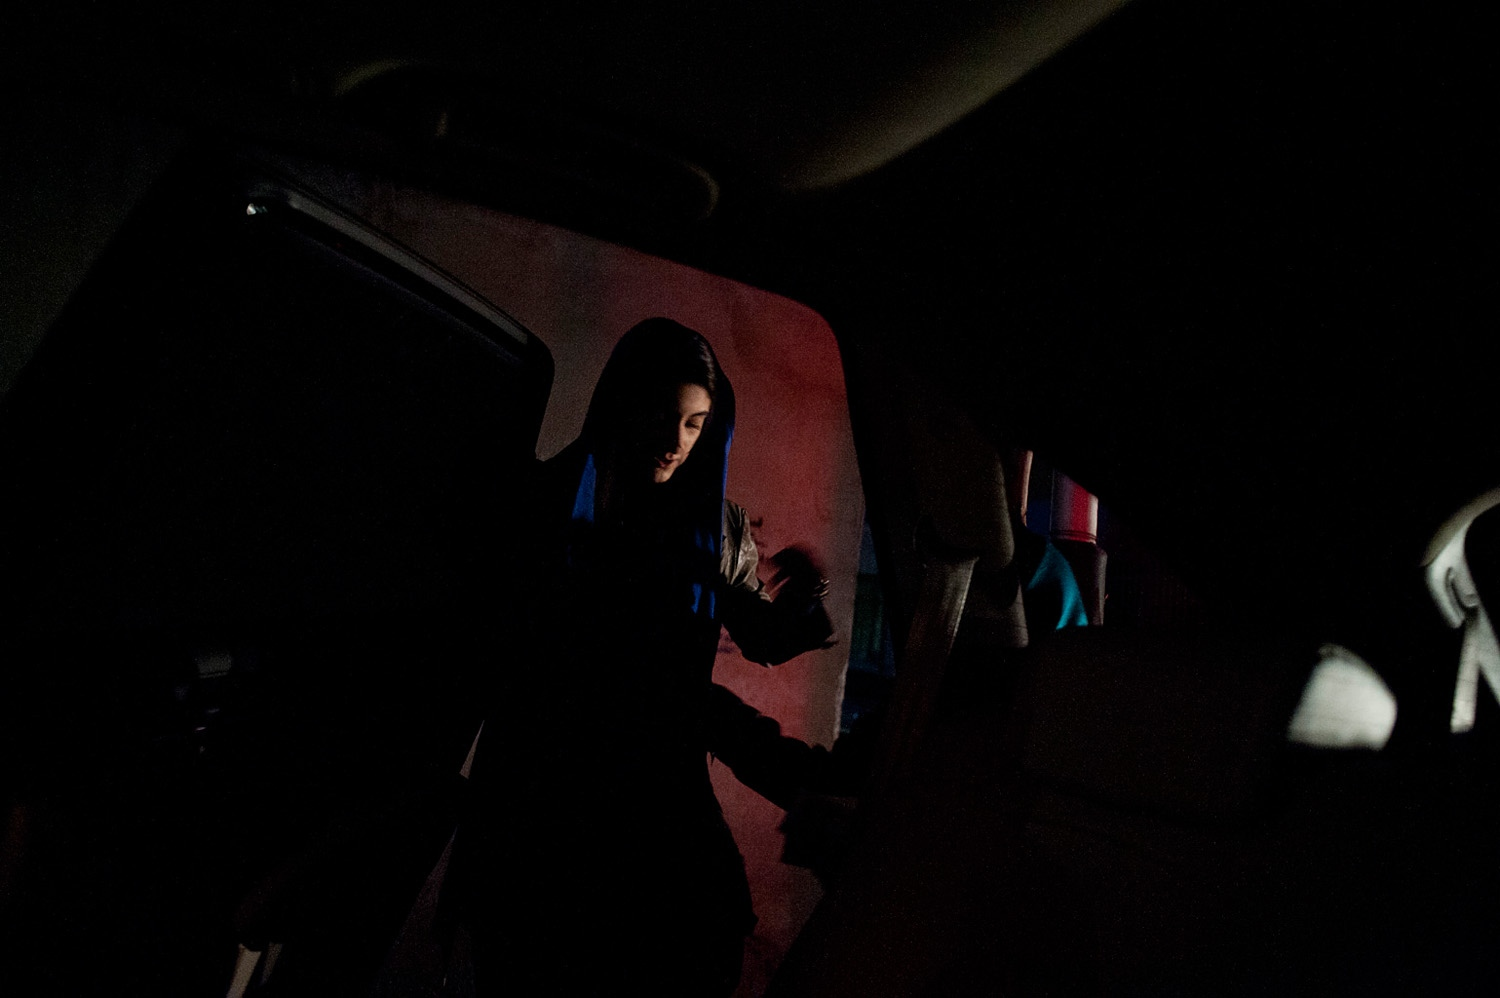 TEHRAN, IRAN - 24/12/11 – Parmida and her friend get into the car after they watch a play at Khaneh Honarmandan, in central Tehran.